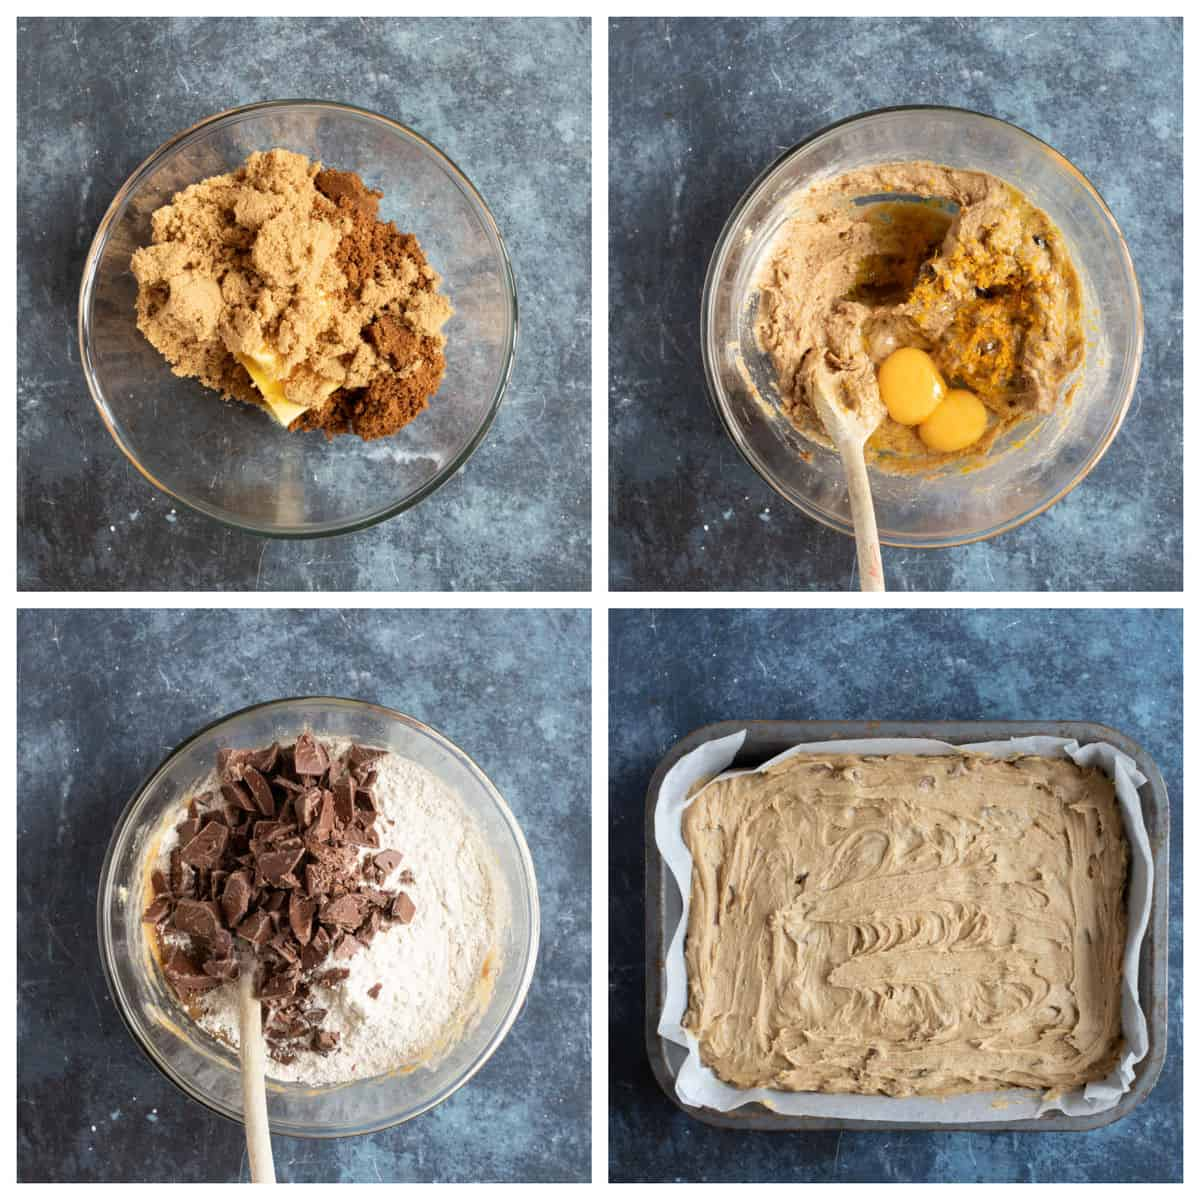 Step by step instructions for making the chocolate orange cookie bars